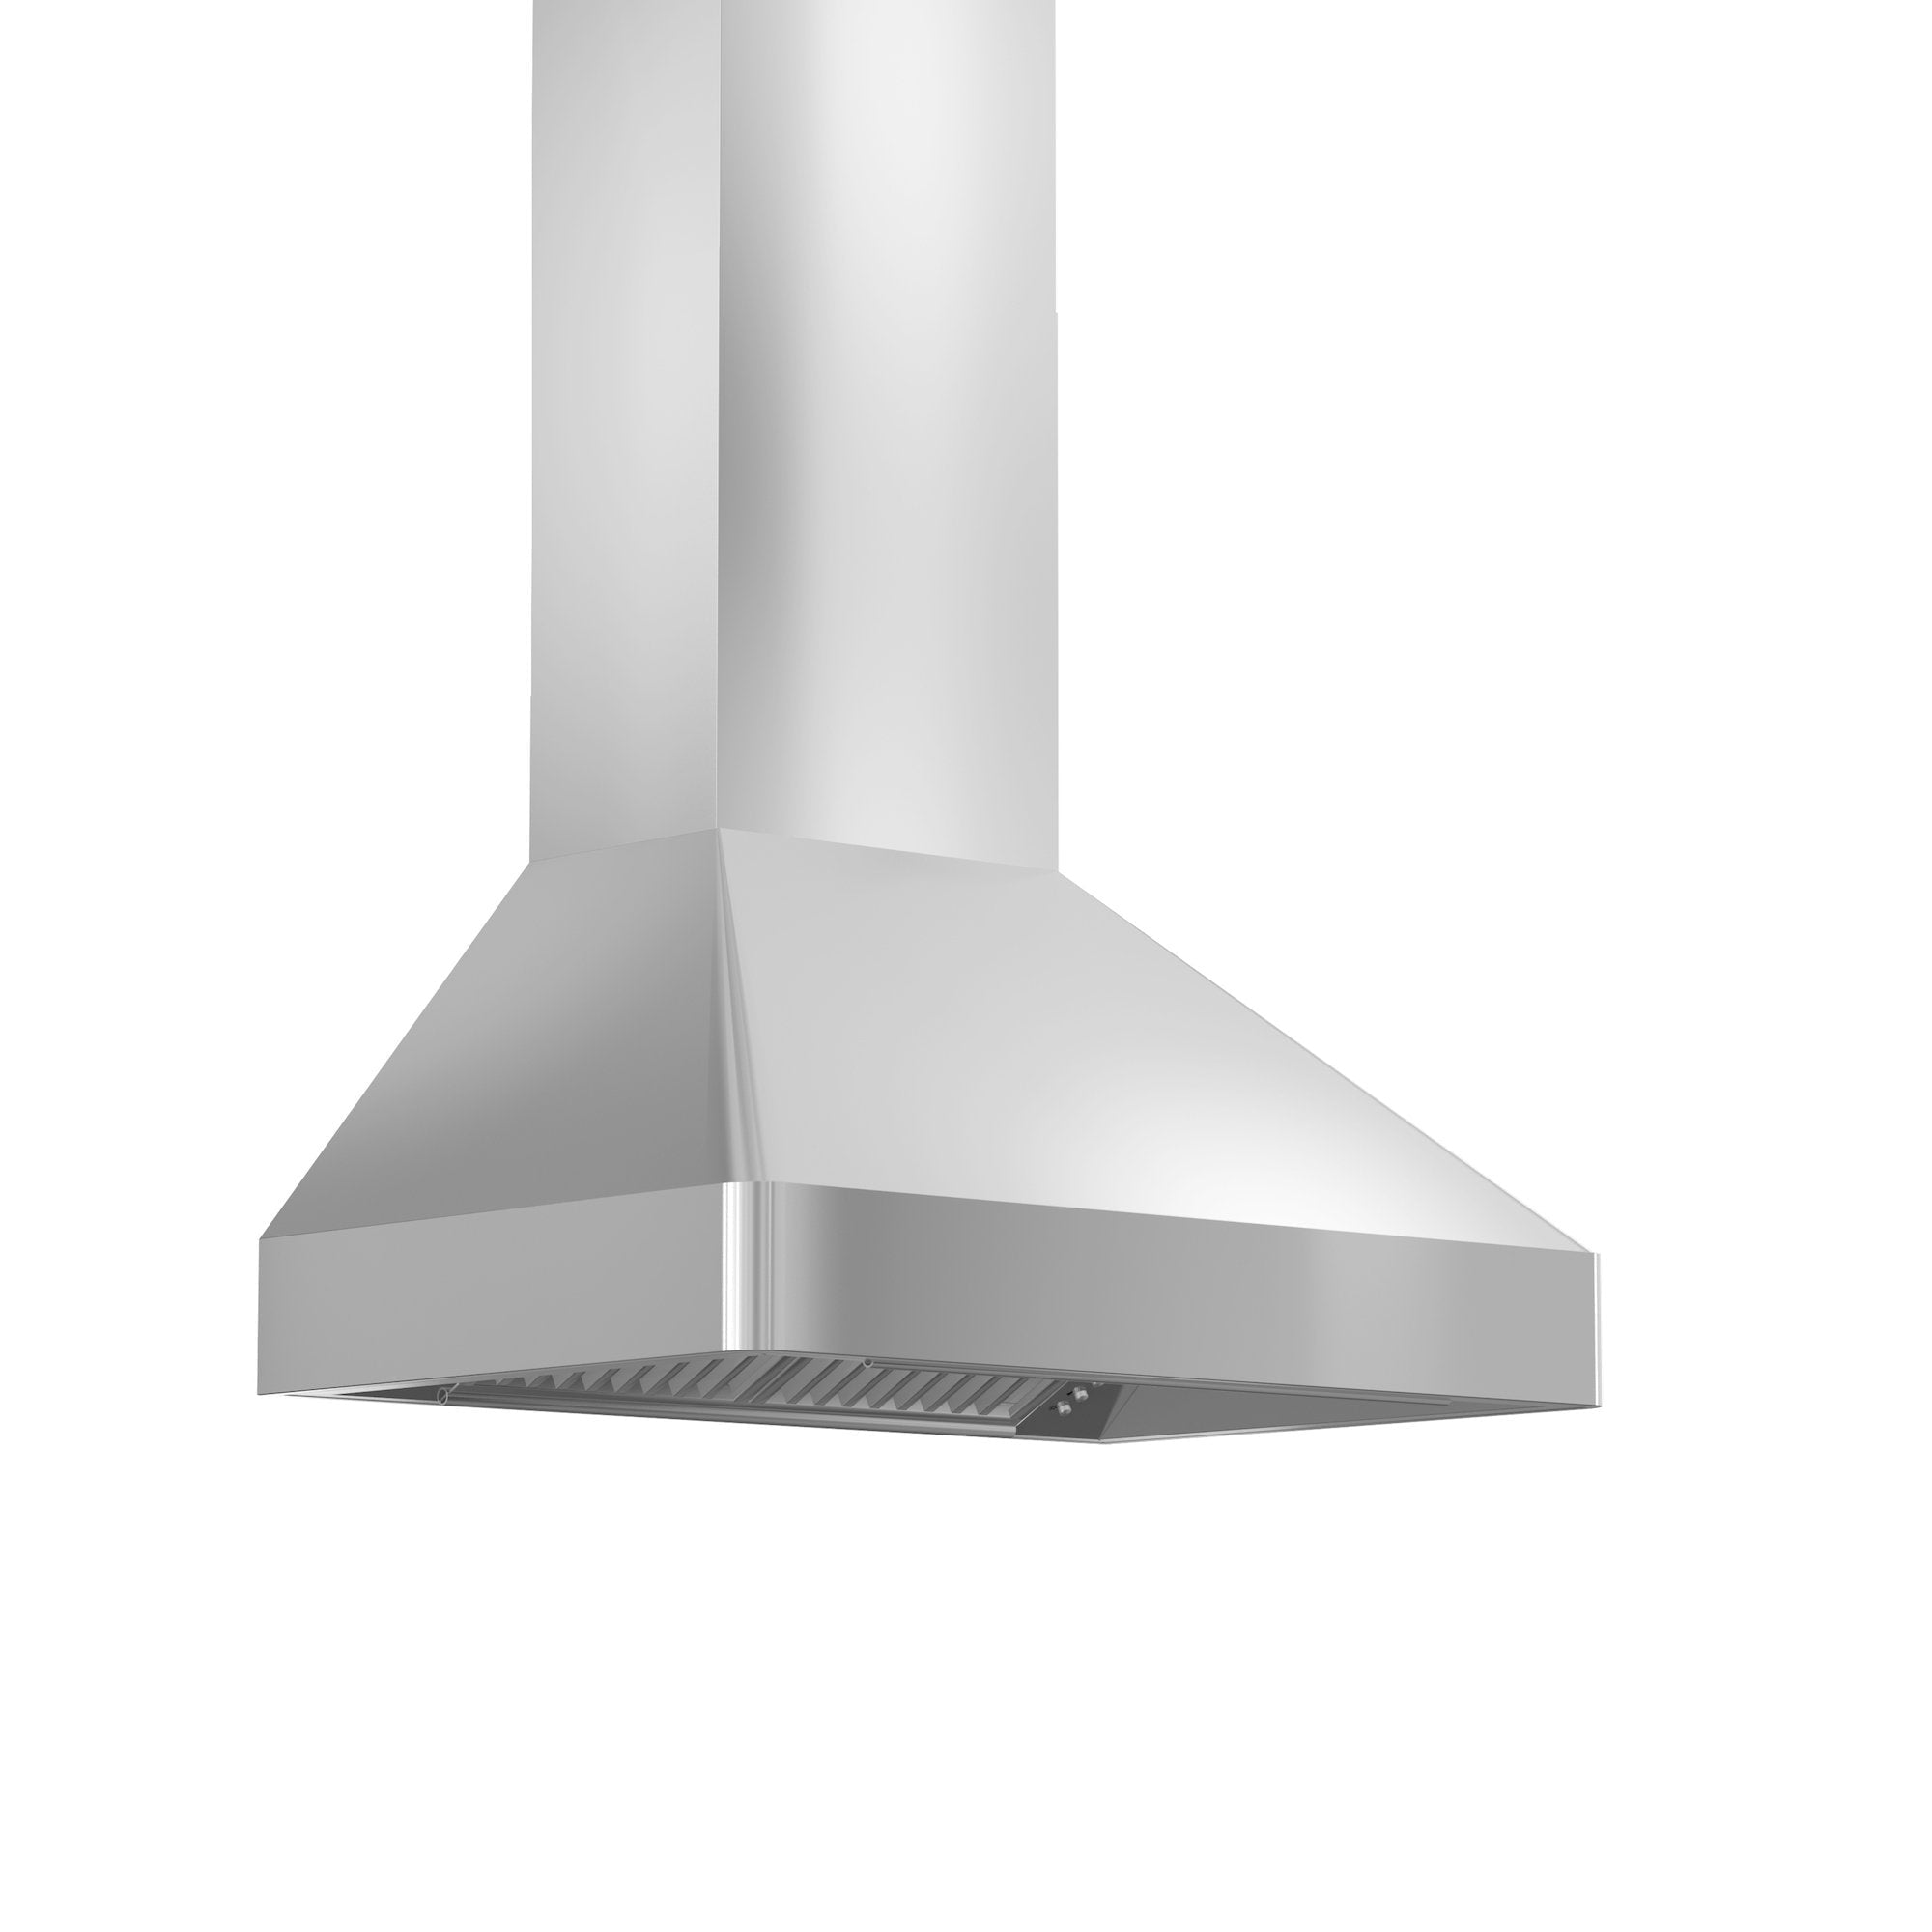 ZLINE Kitchen and Bath, ZLINE Professional Wall Mount Range Hood in Stainless Steel (9697), 9697-30,